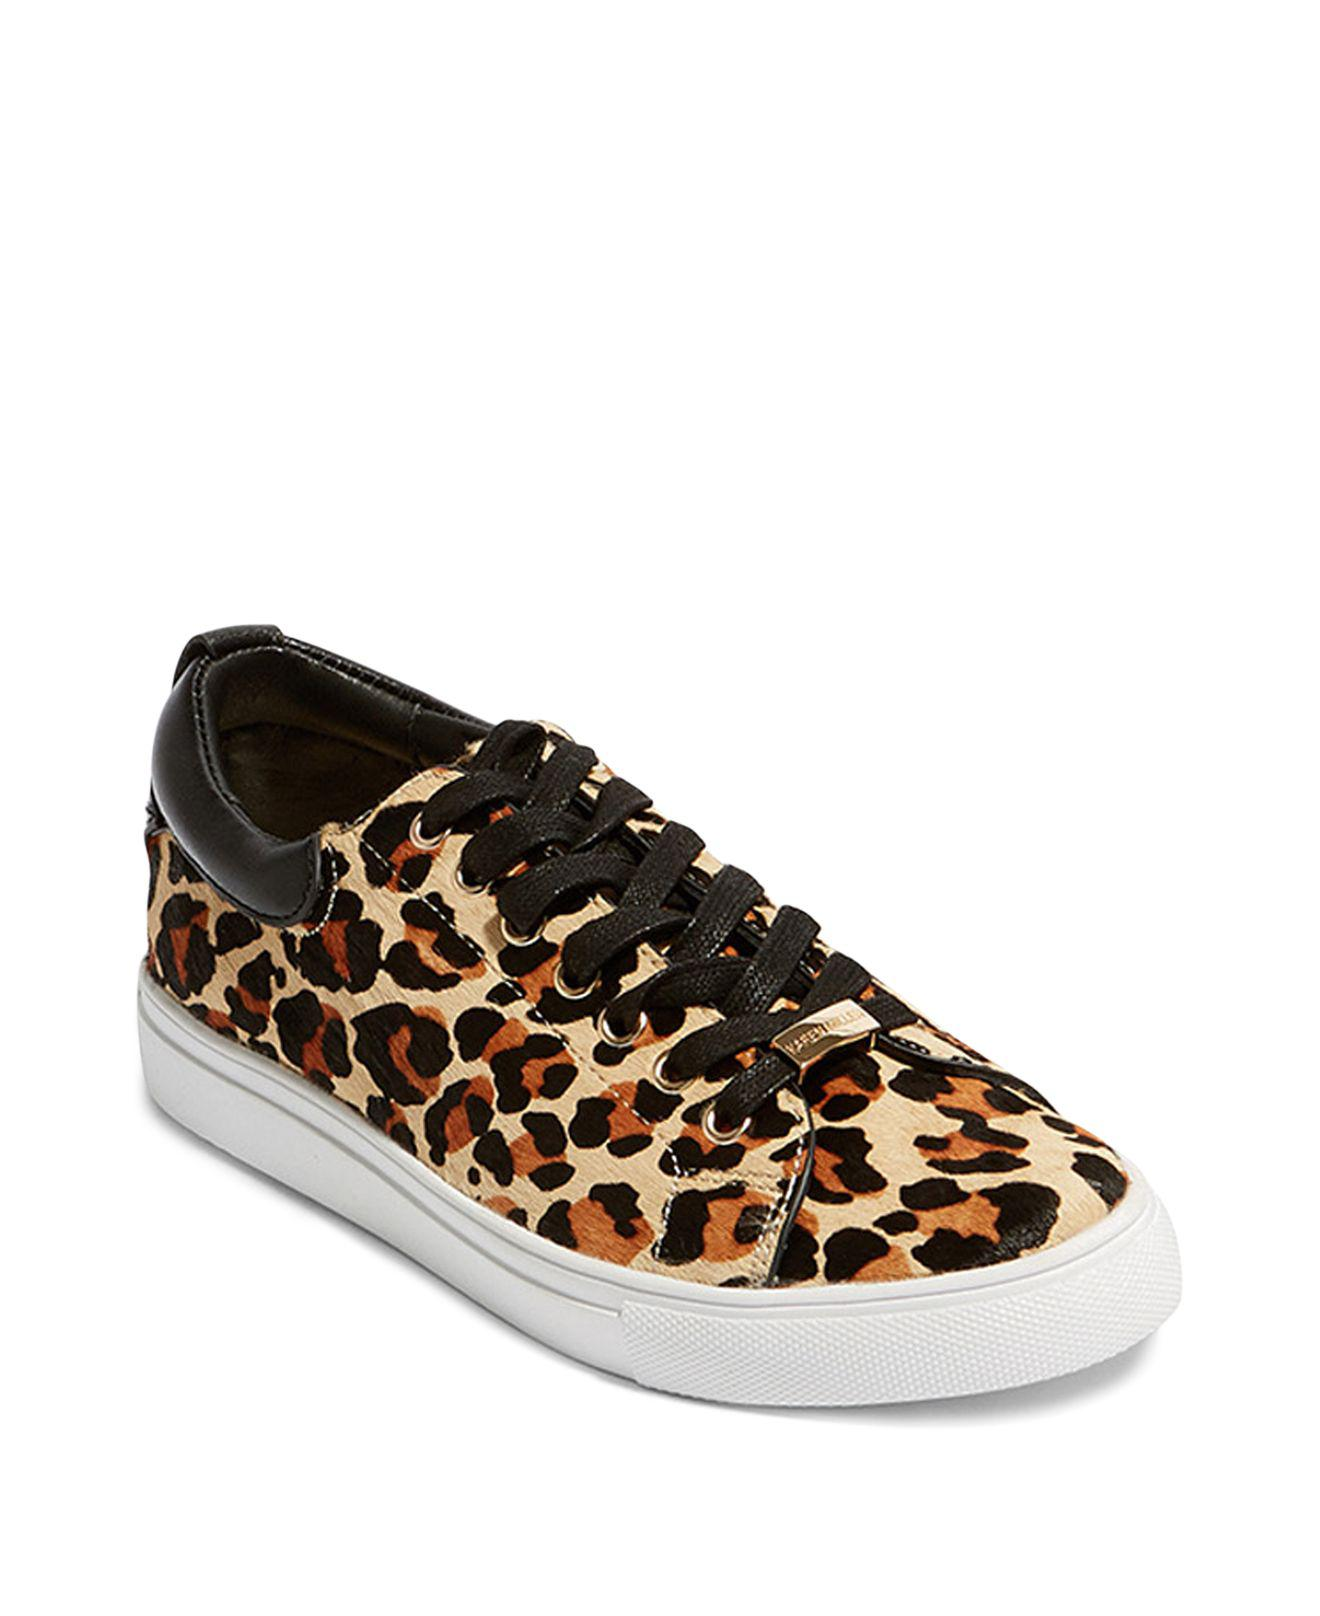 Karen Millen Women's Leopard Print Calf Hair Low Top Lace Up Sneakers